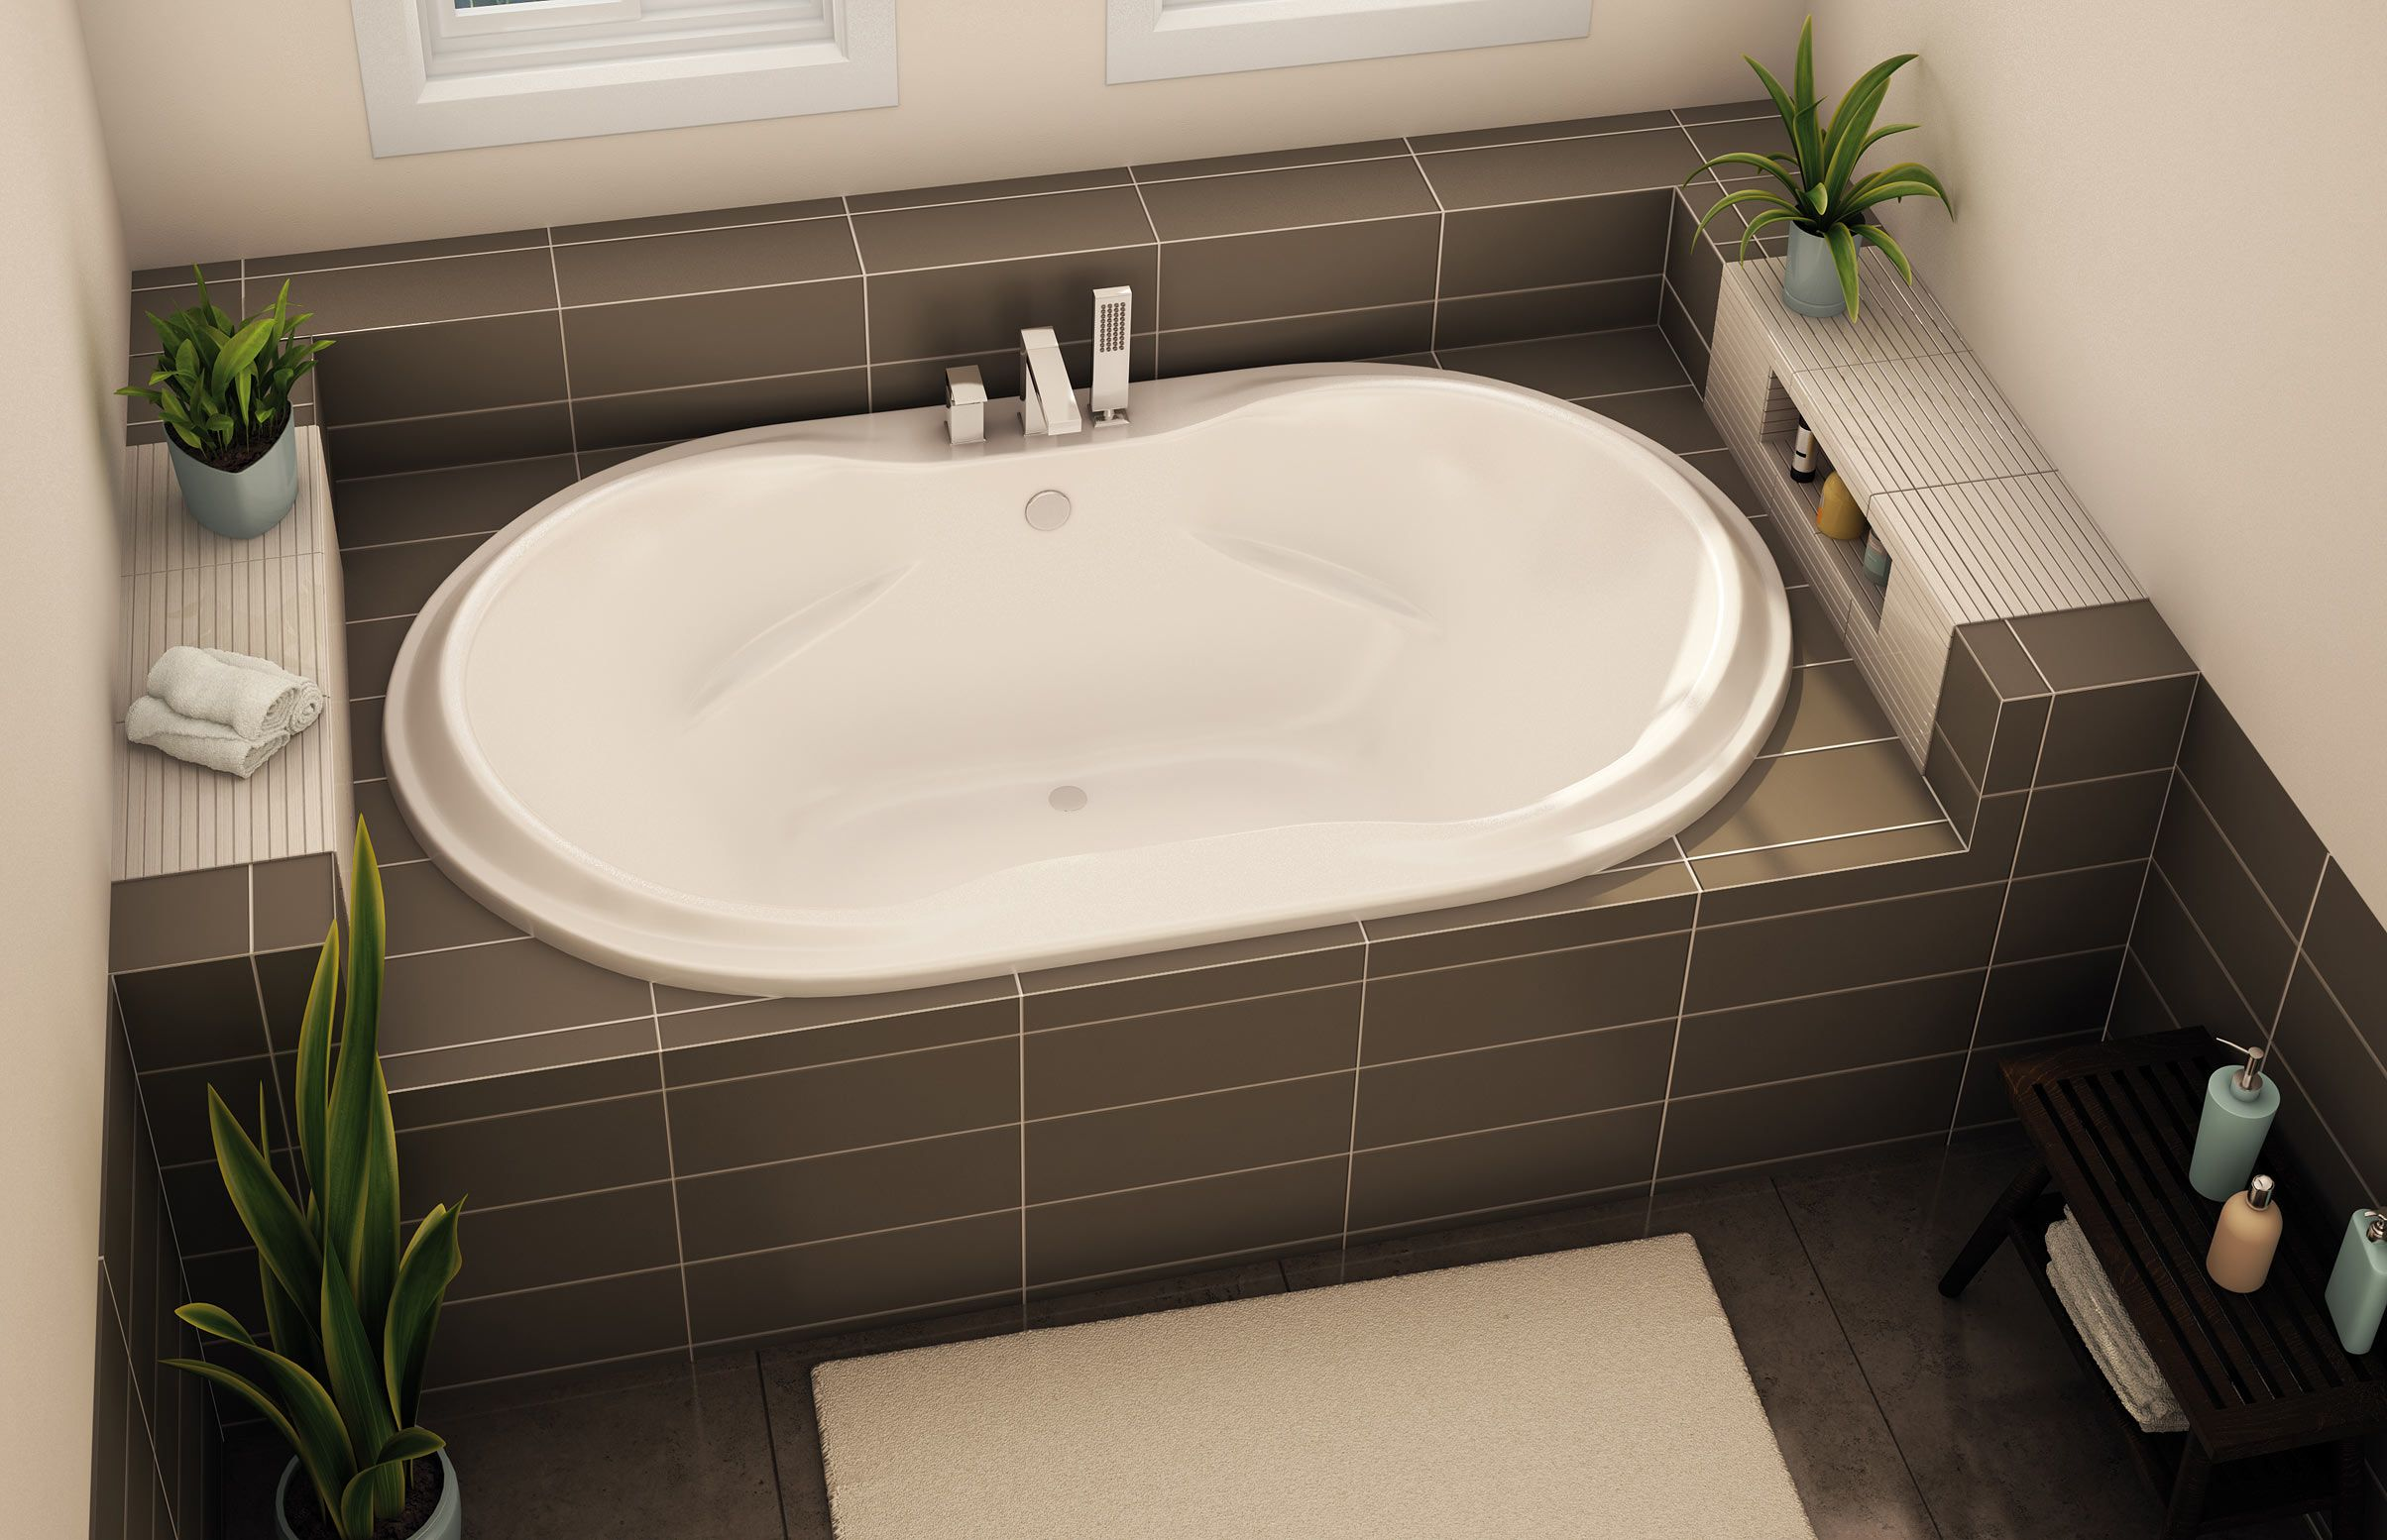 Exceptional Oval Tub With Tap On Side, As Drop In With Tile Surround.